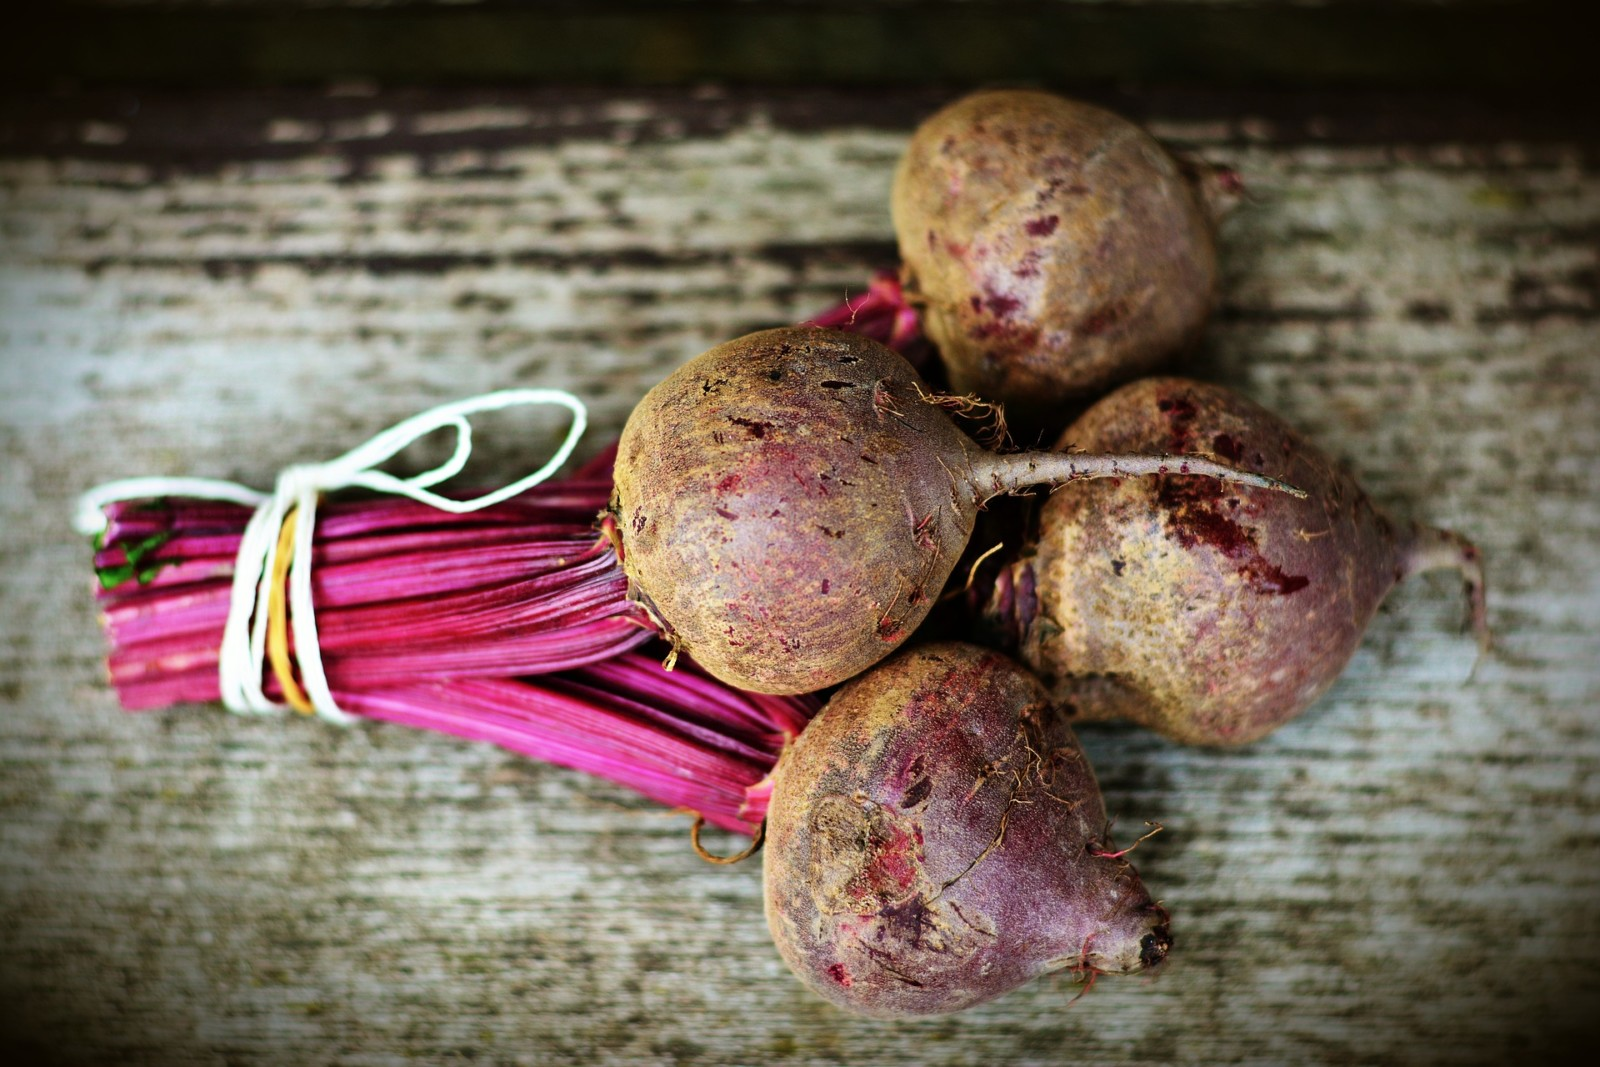 beetroot for a budget meal